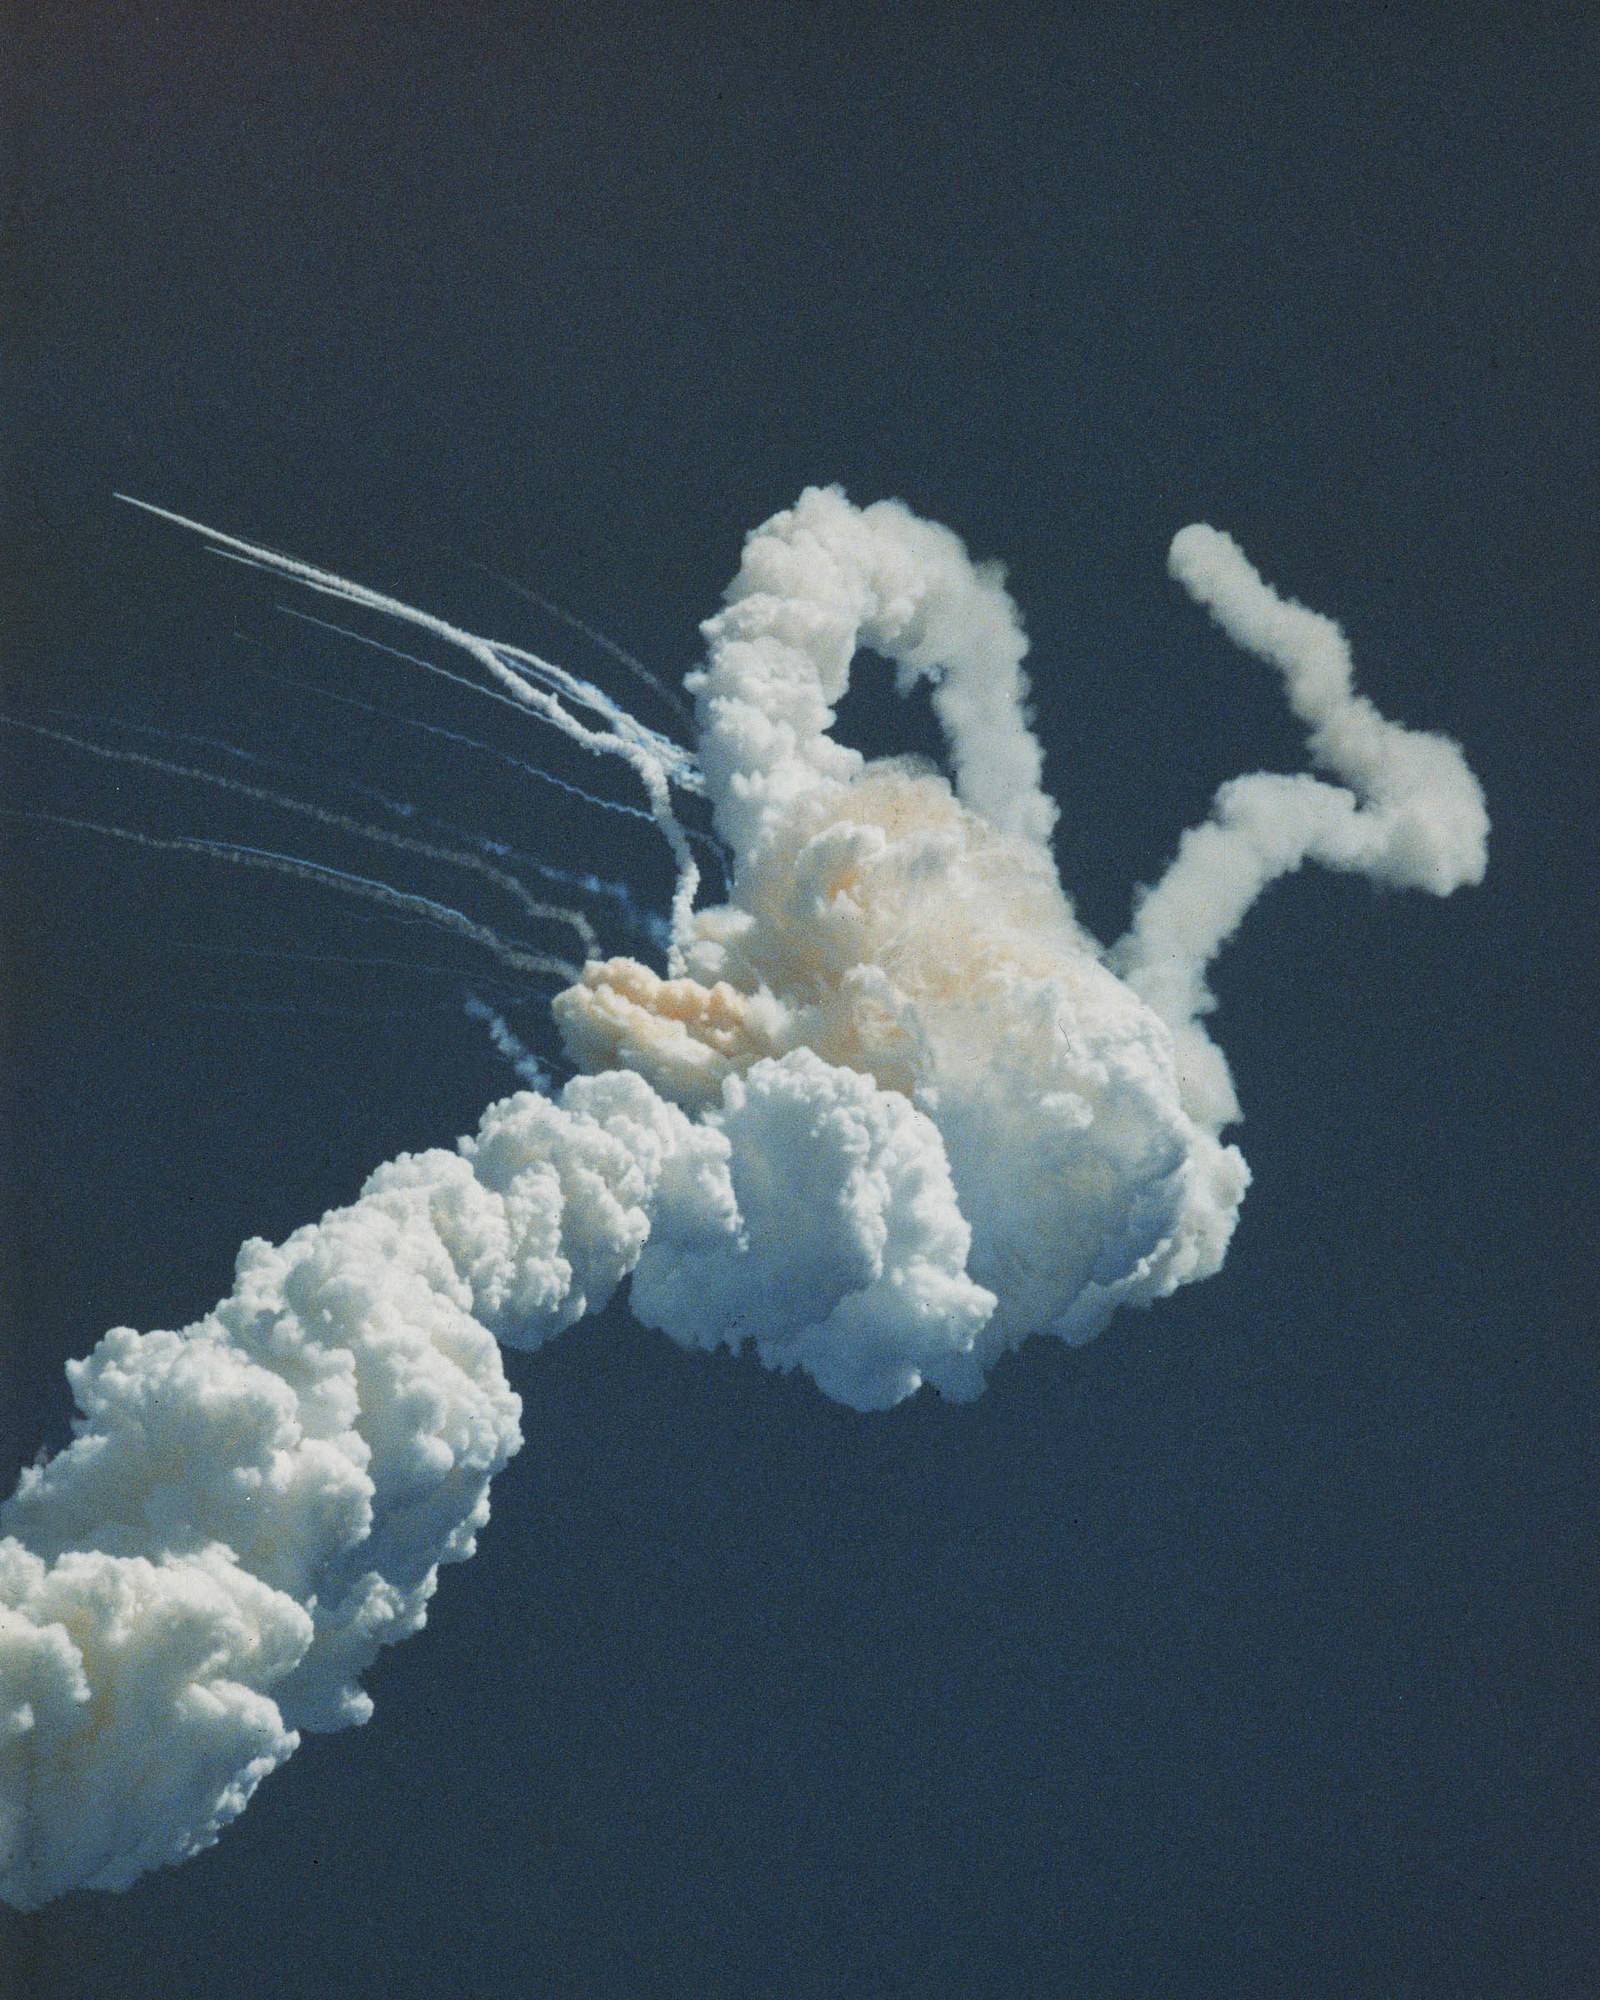 1986 Huge smoke trails resulting from the fatal explosion of the Challenger shuttle 73 seconds after takeoff.